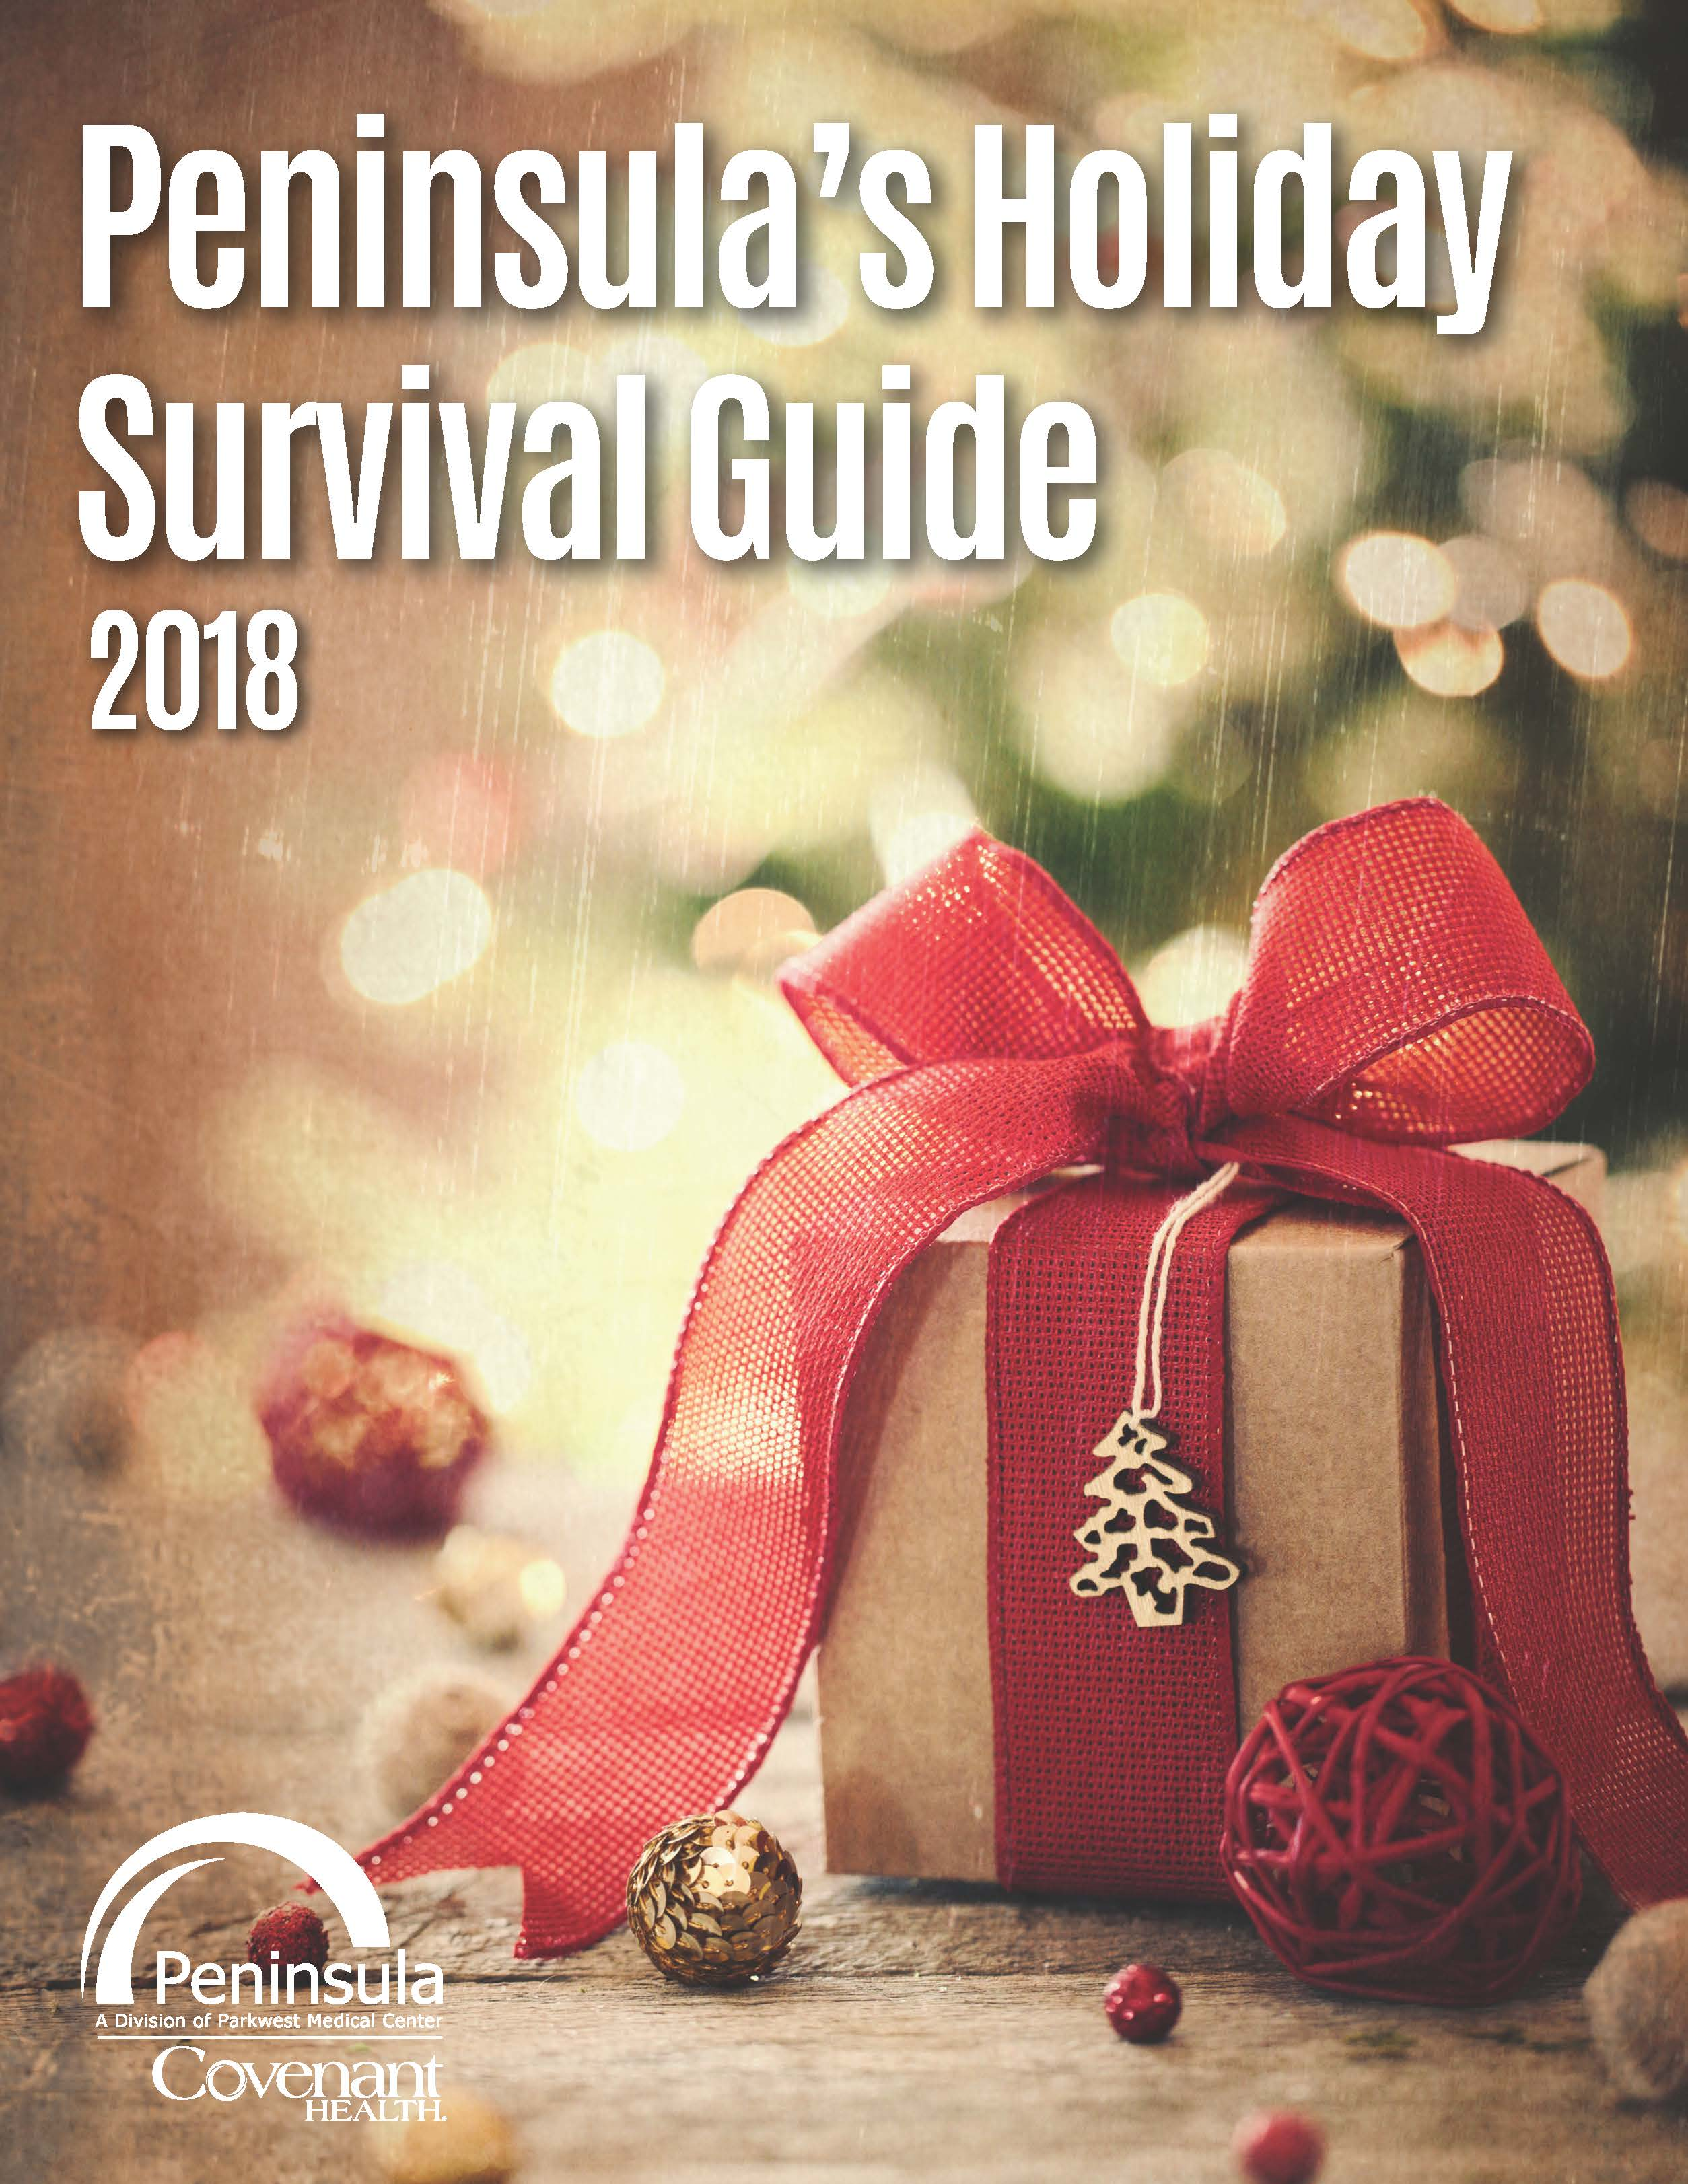 Peninsula's 2018 Holiday Survival Guide